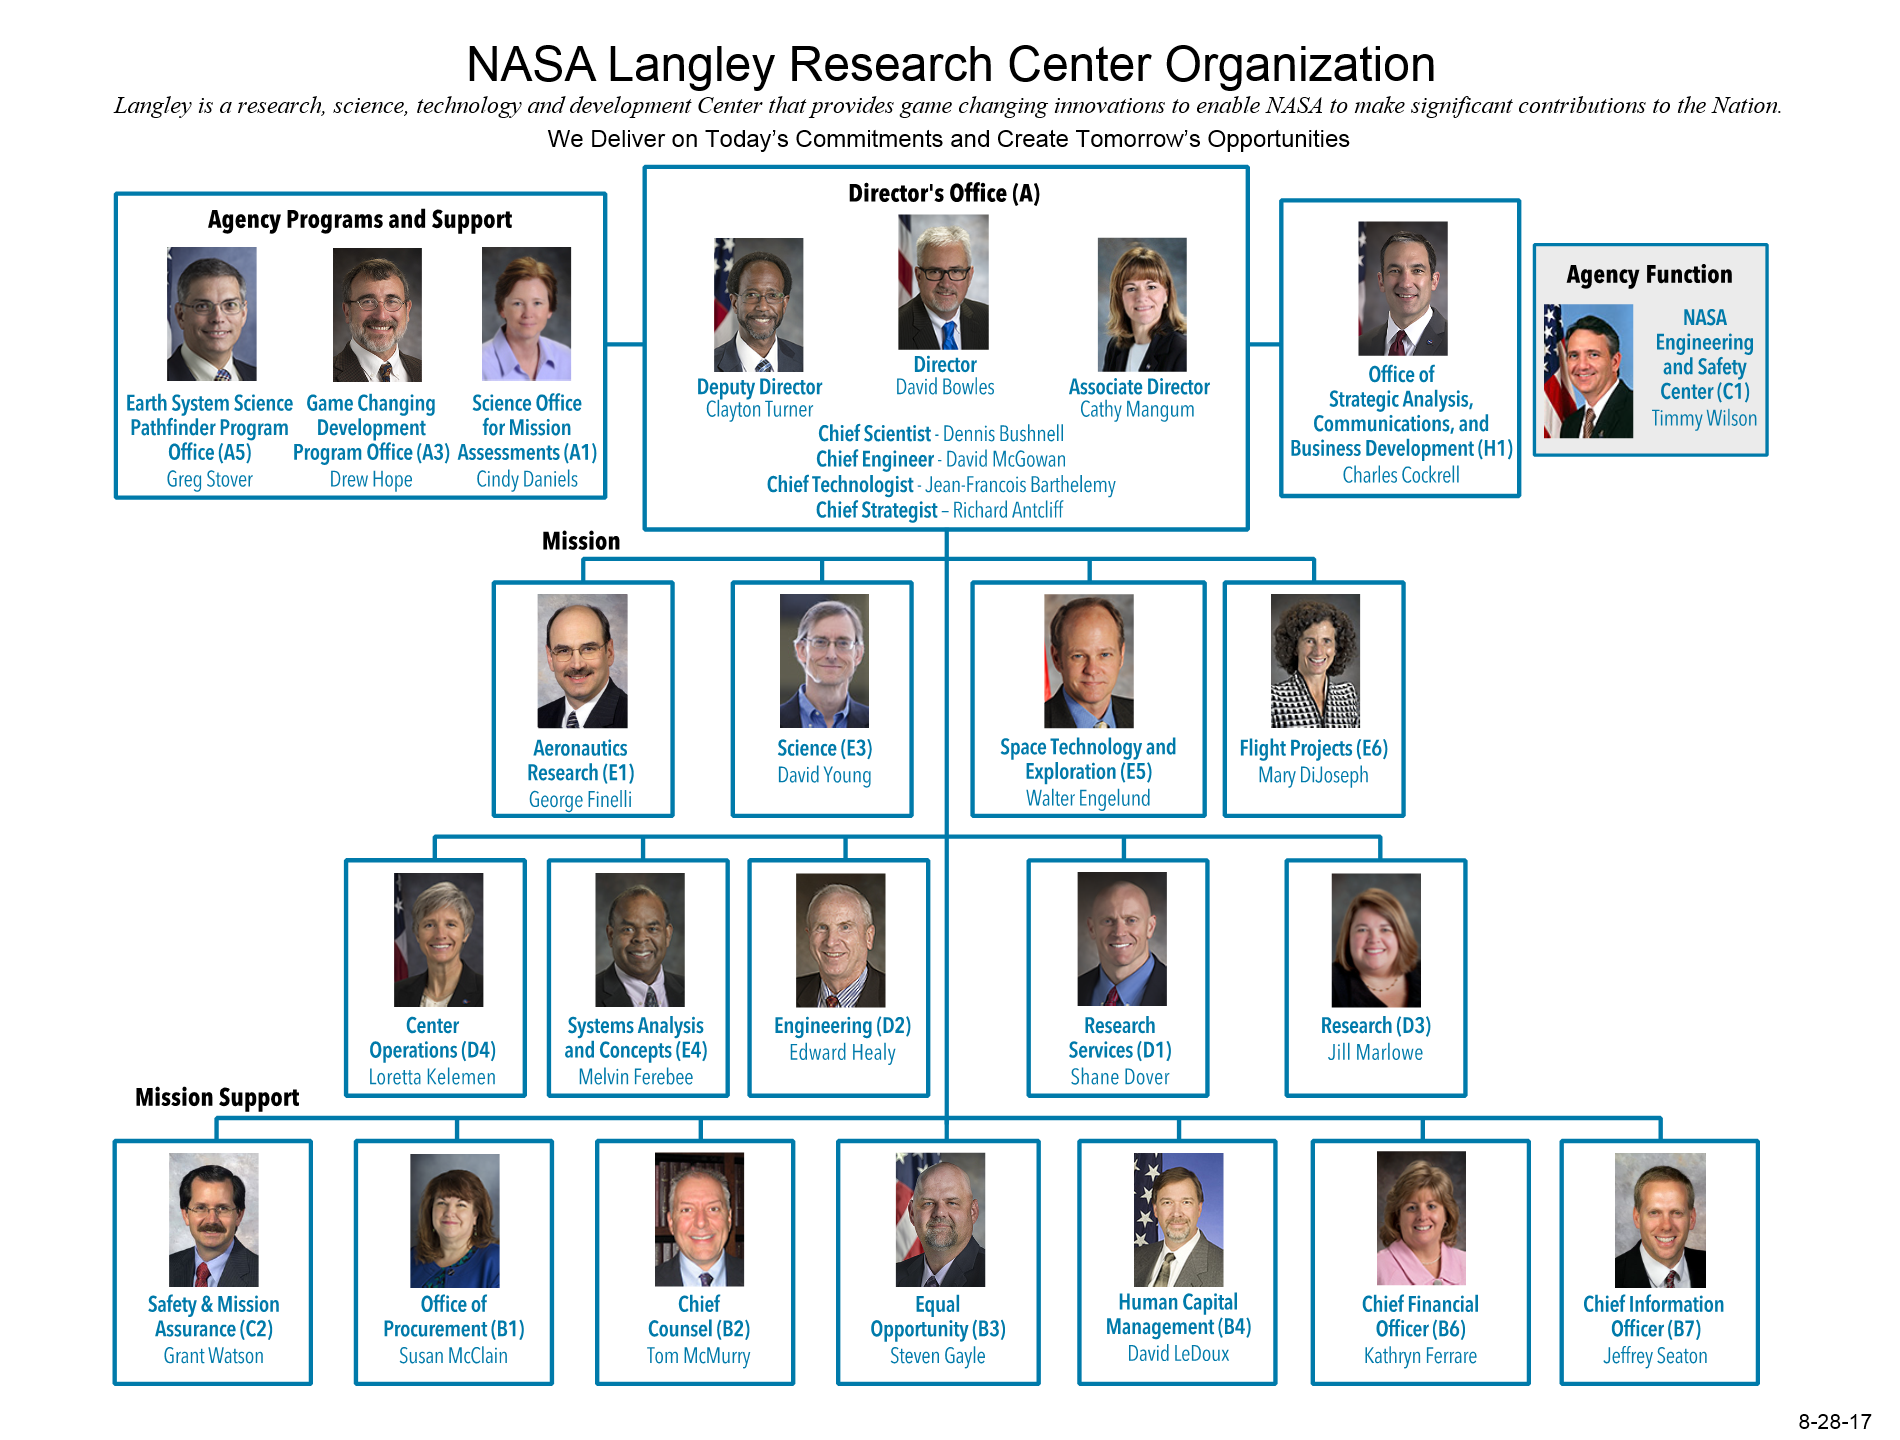 iss nasa organization chart - photo #43